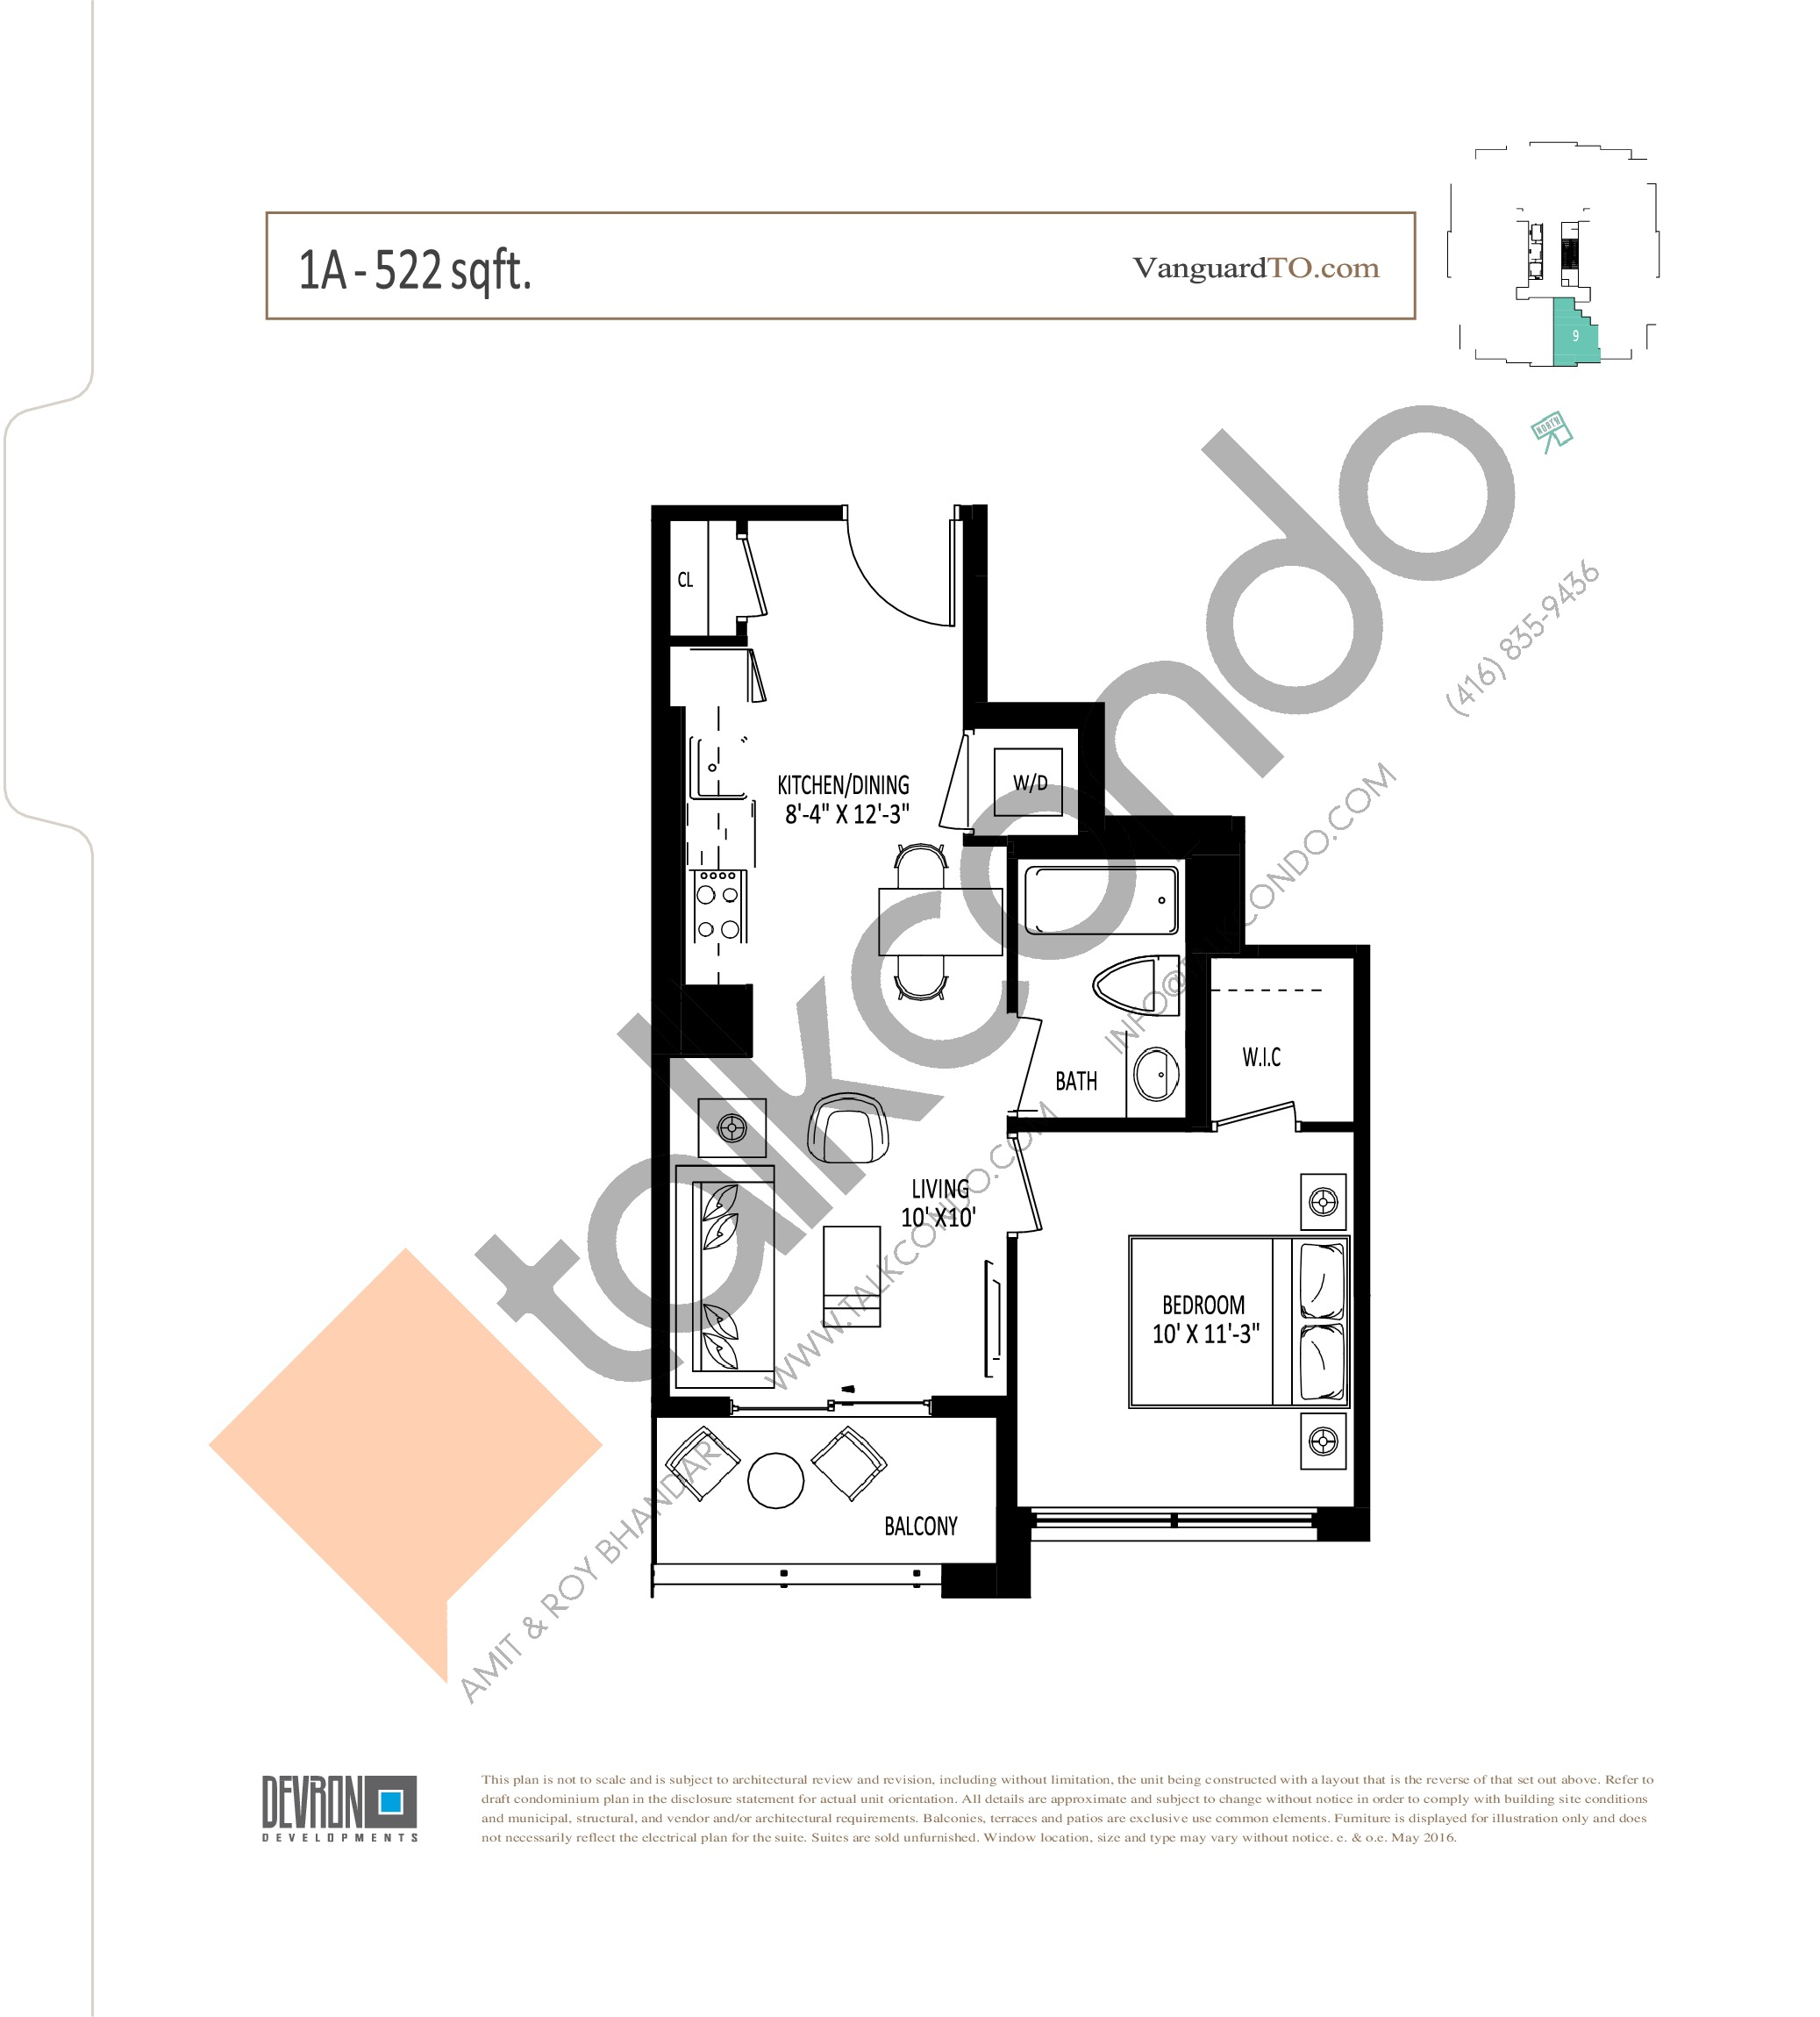 1A Floor Plan at The Vanguard - 522 sq.ft